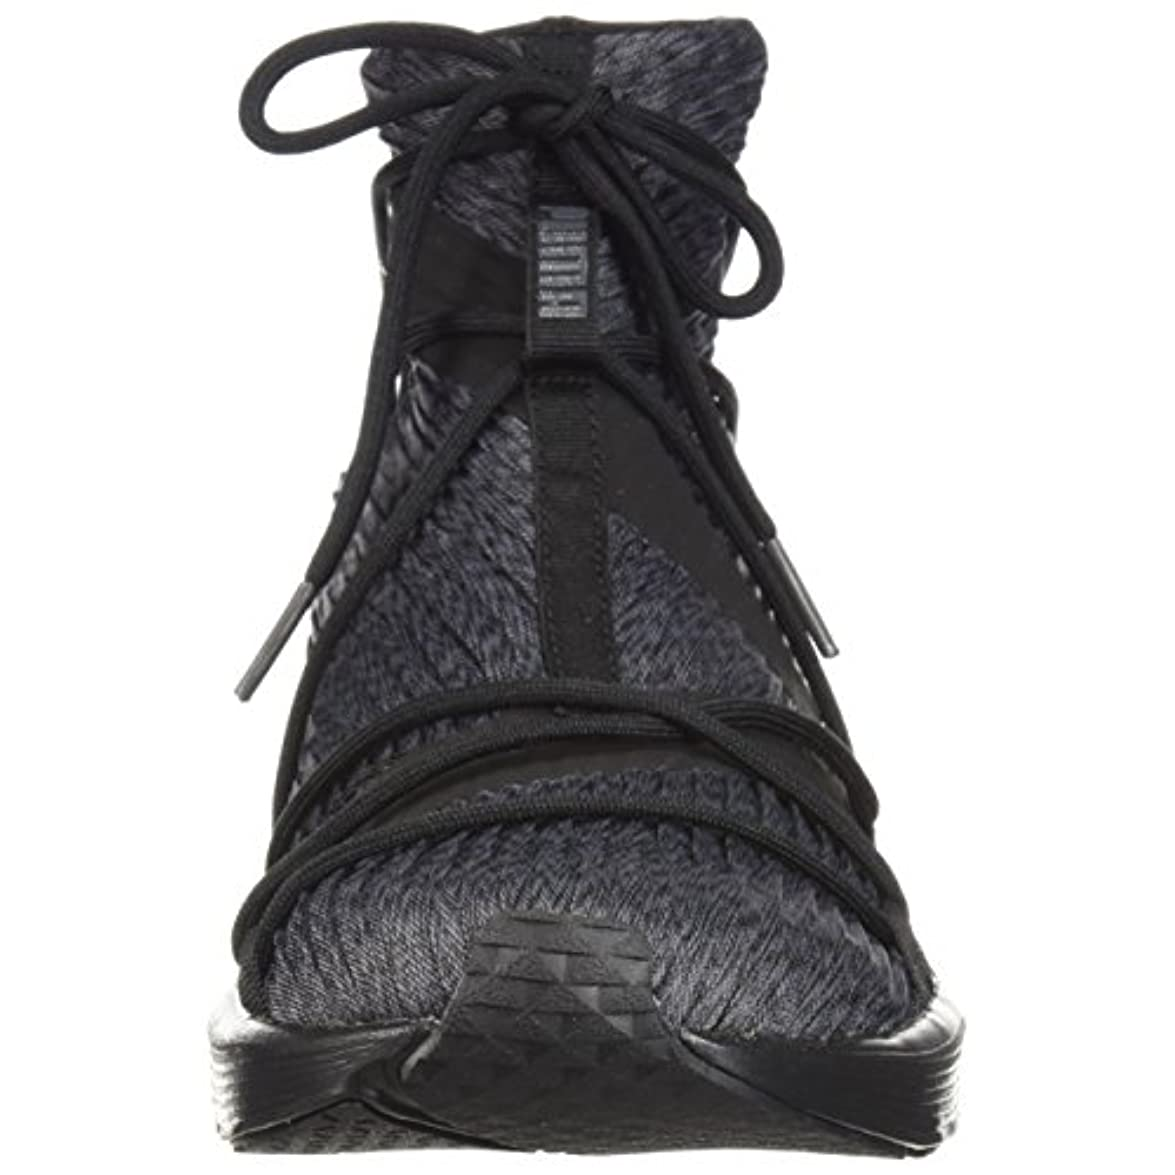 Pumapuma-190539 - Fierce Rope Pleats Donna